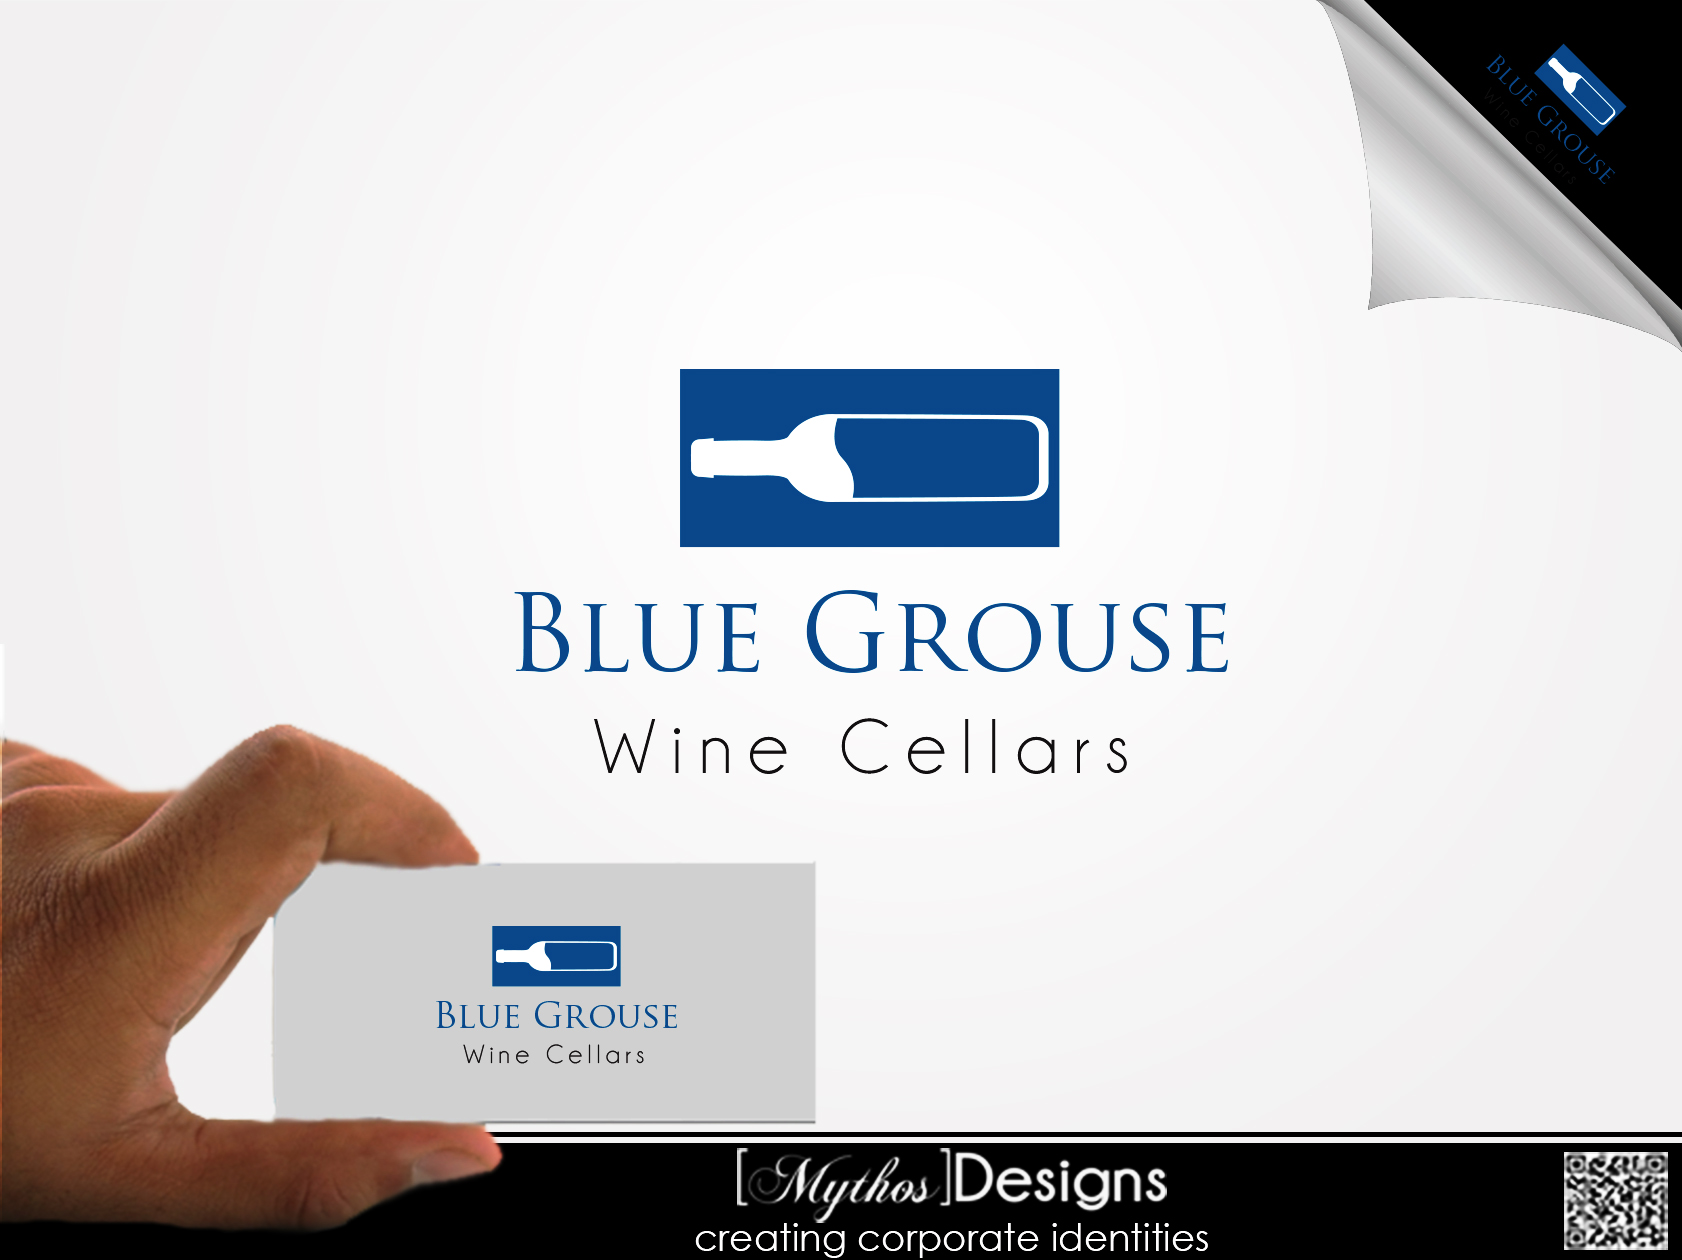 Logo Design by Mythos Designs - Entry No. 9 in the Logo Design Contest Creative Logo Design for Blue Grouse Wine Cellars.